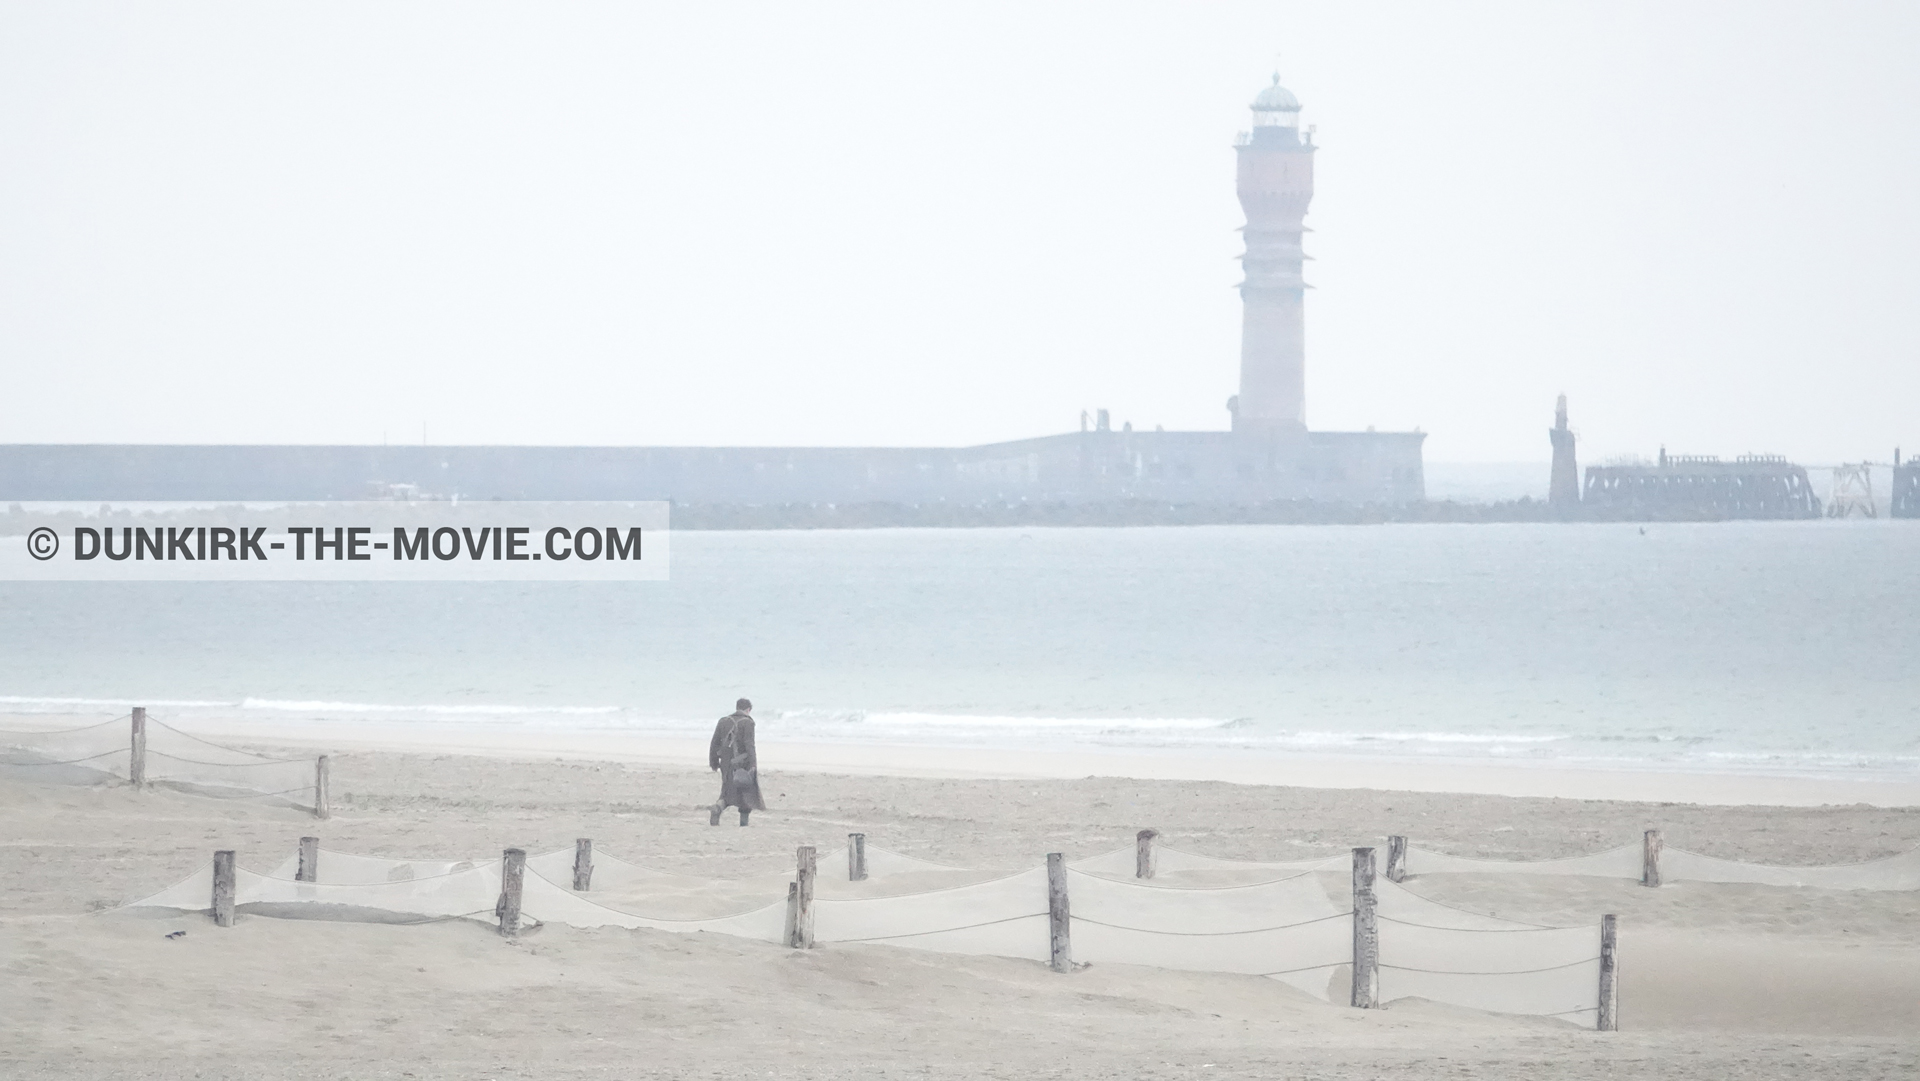 Picture with supernumeraries, St Pol sur Mer lighthouse, beach,  from behind the scene of the Dunkirk movie by Nolan